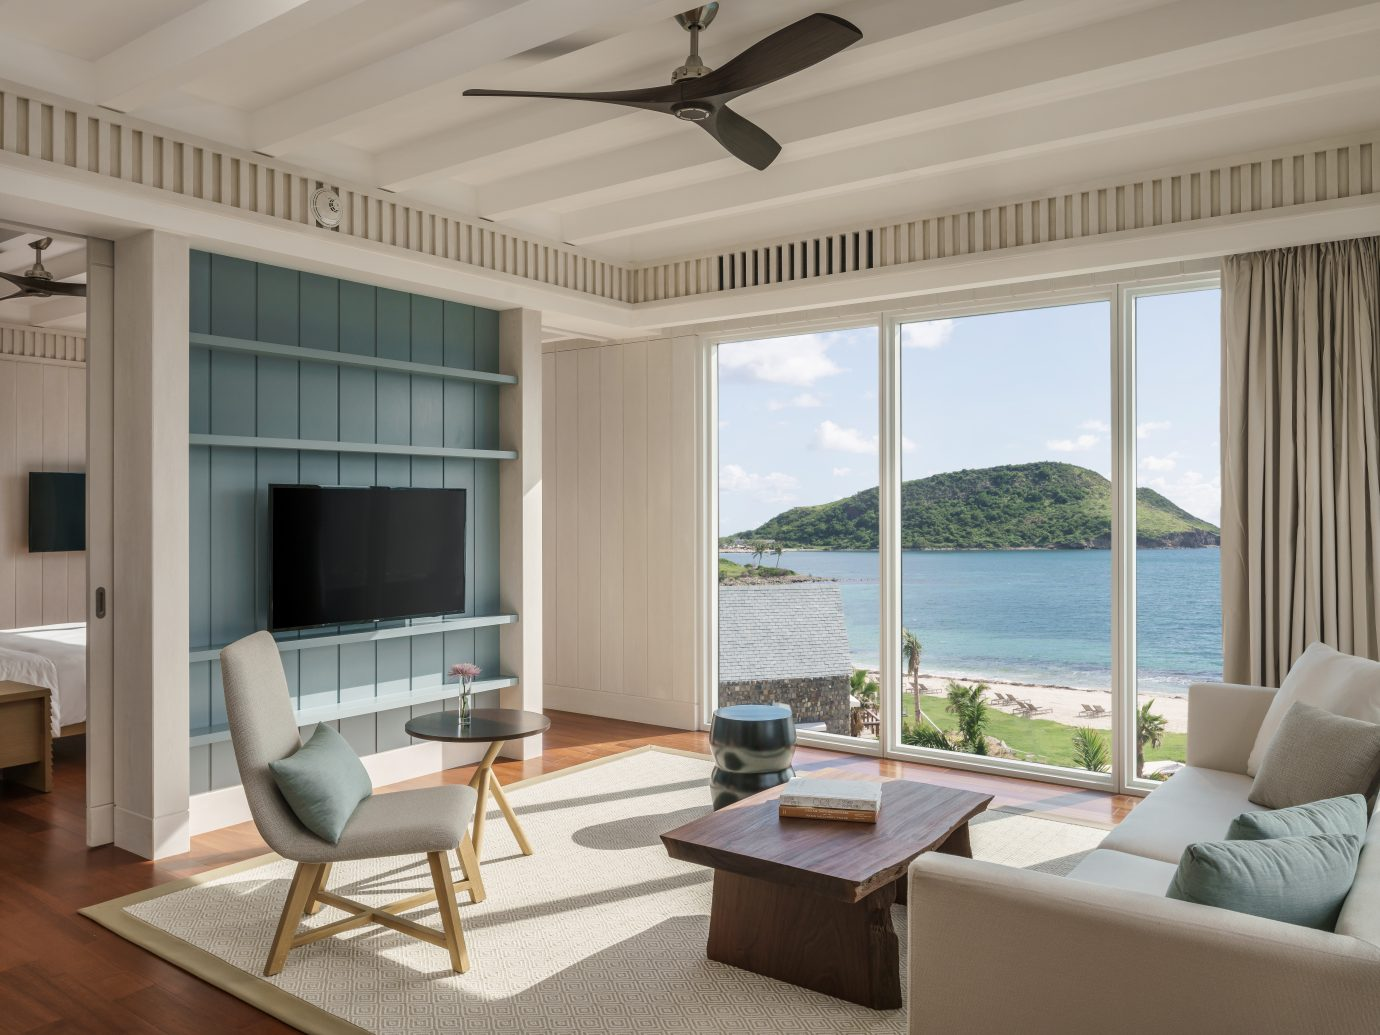 Living Room in the executive suite at the Park Hyatt St. Kitts